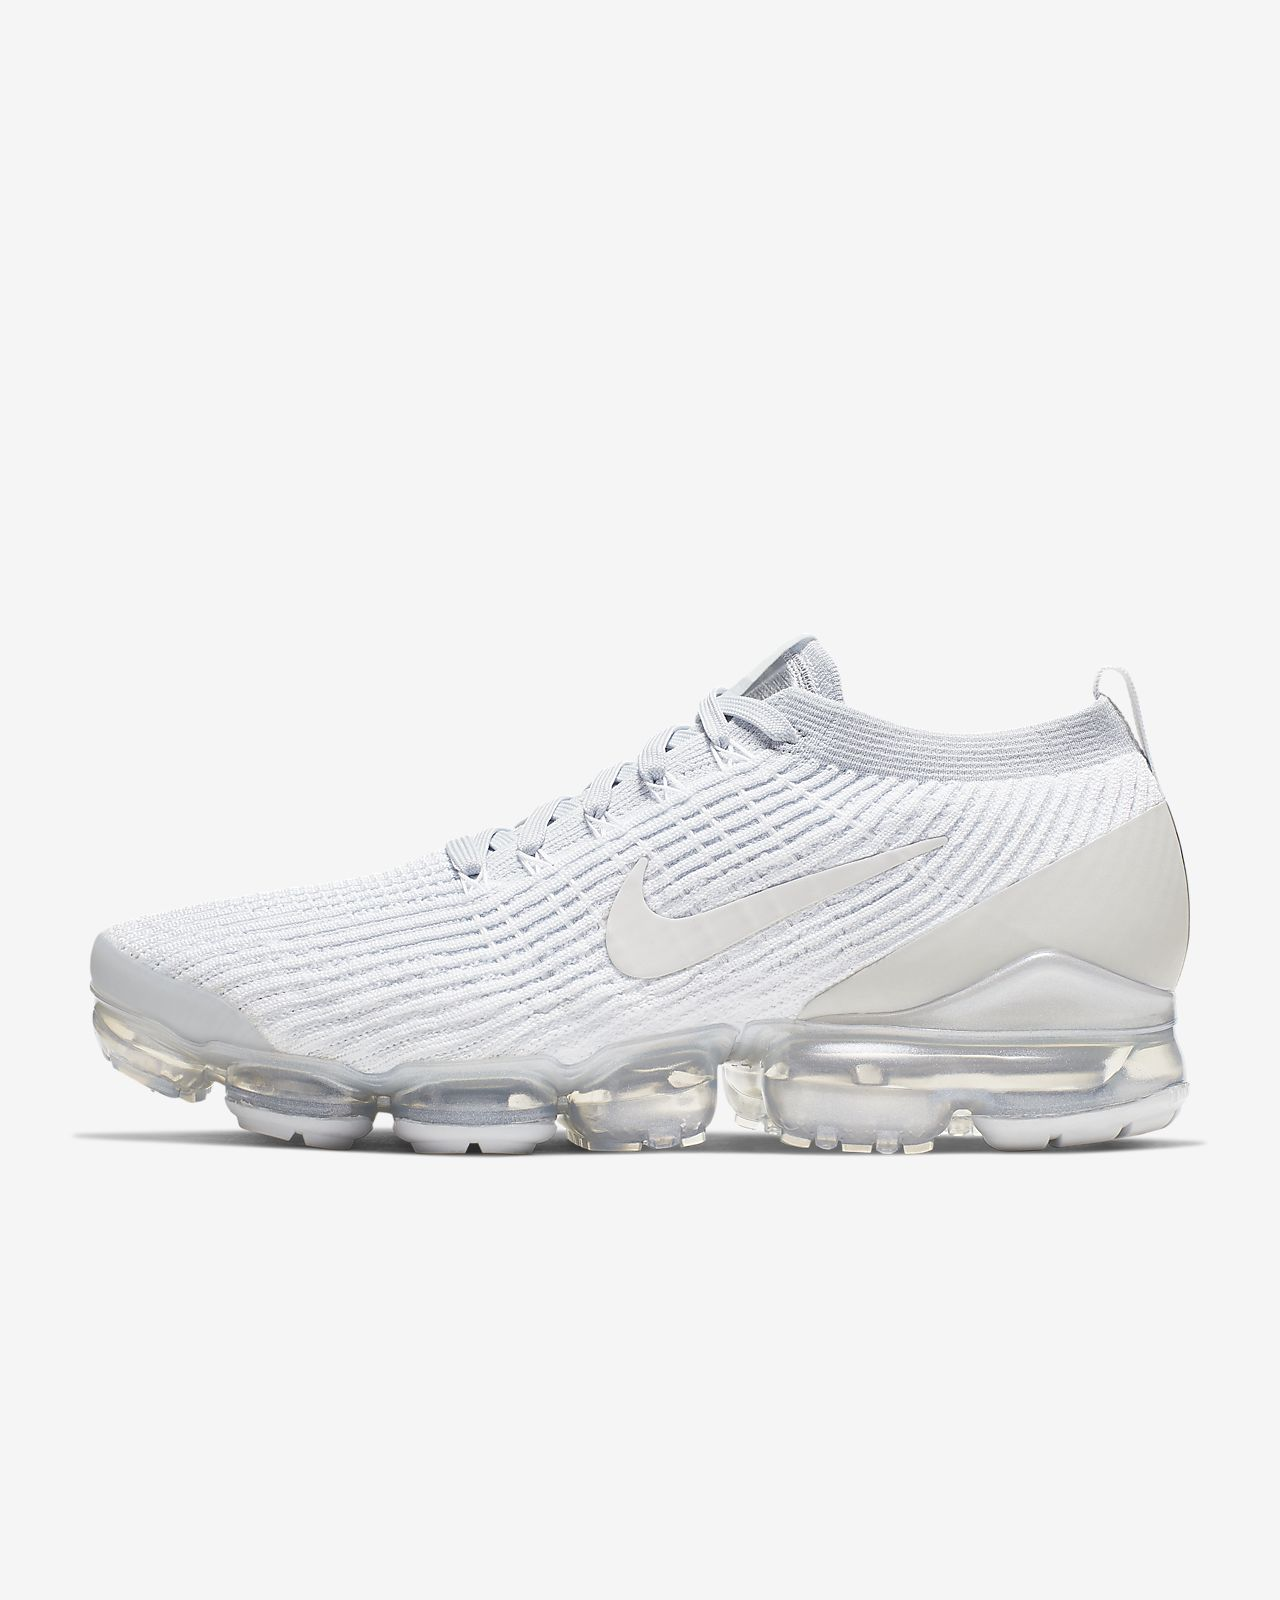 half off 62cad 9b8d1 ... Nike Air VaporMax Flyknit 3 Men s Shoe